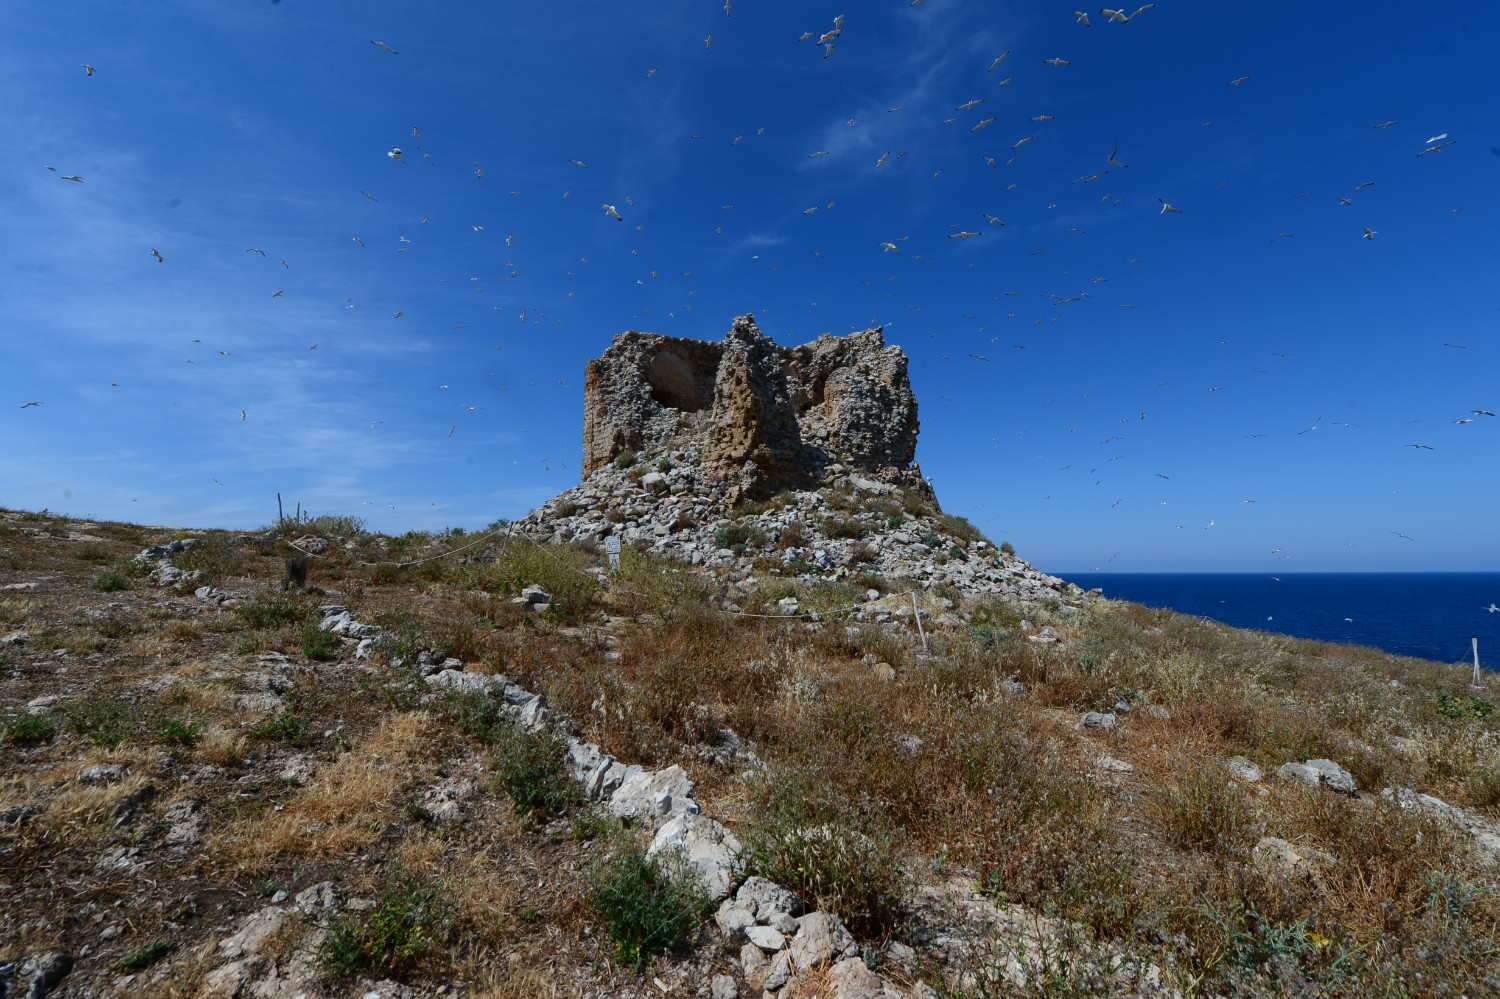 The tower on the Sicilian island of Isola delle Femmine